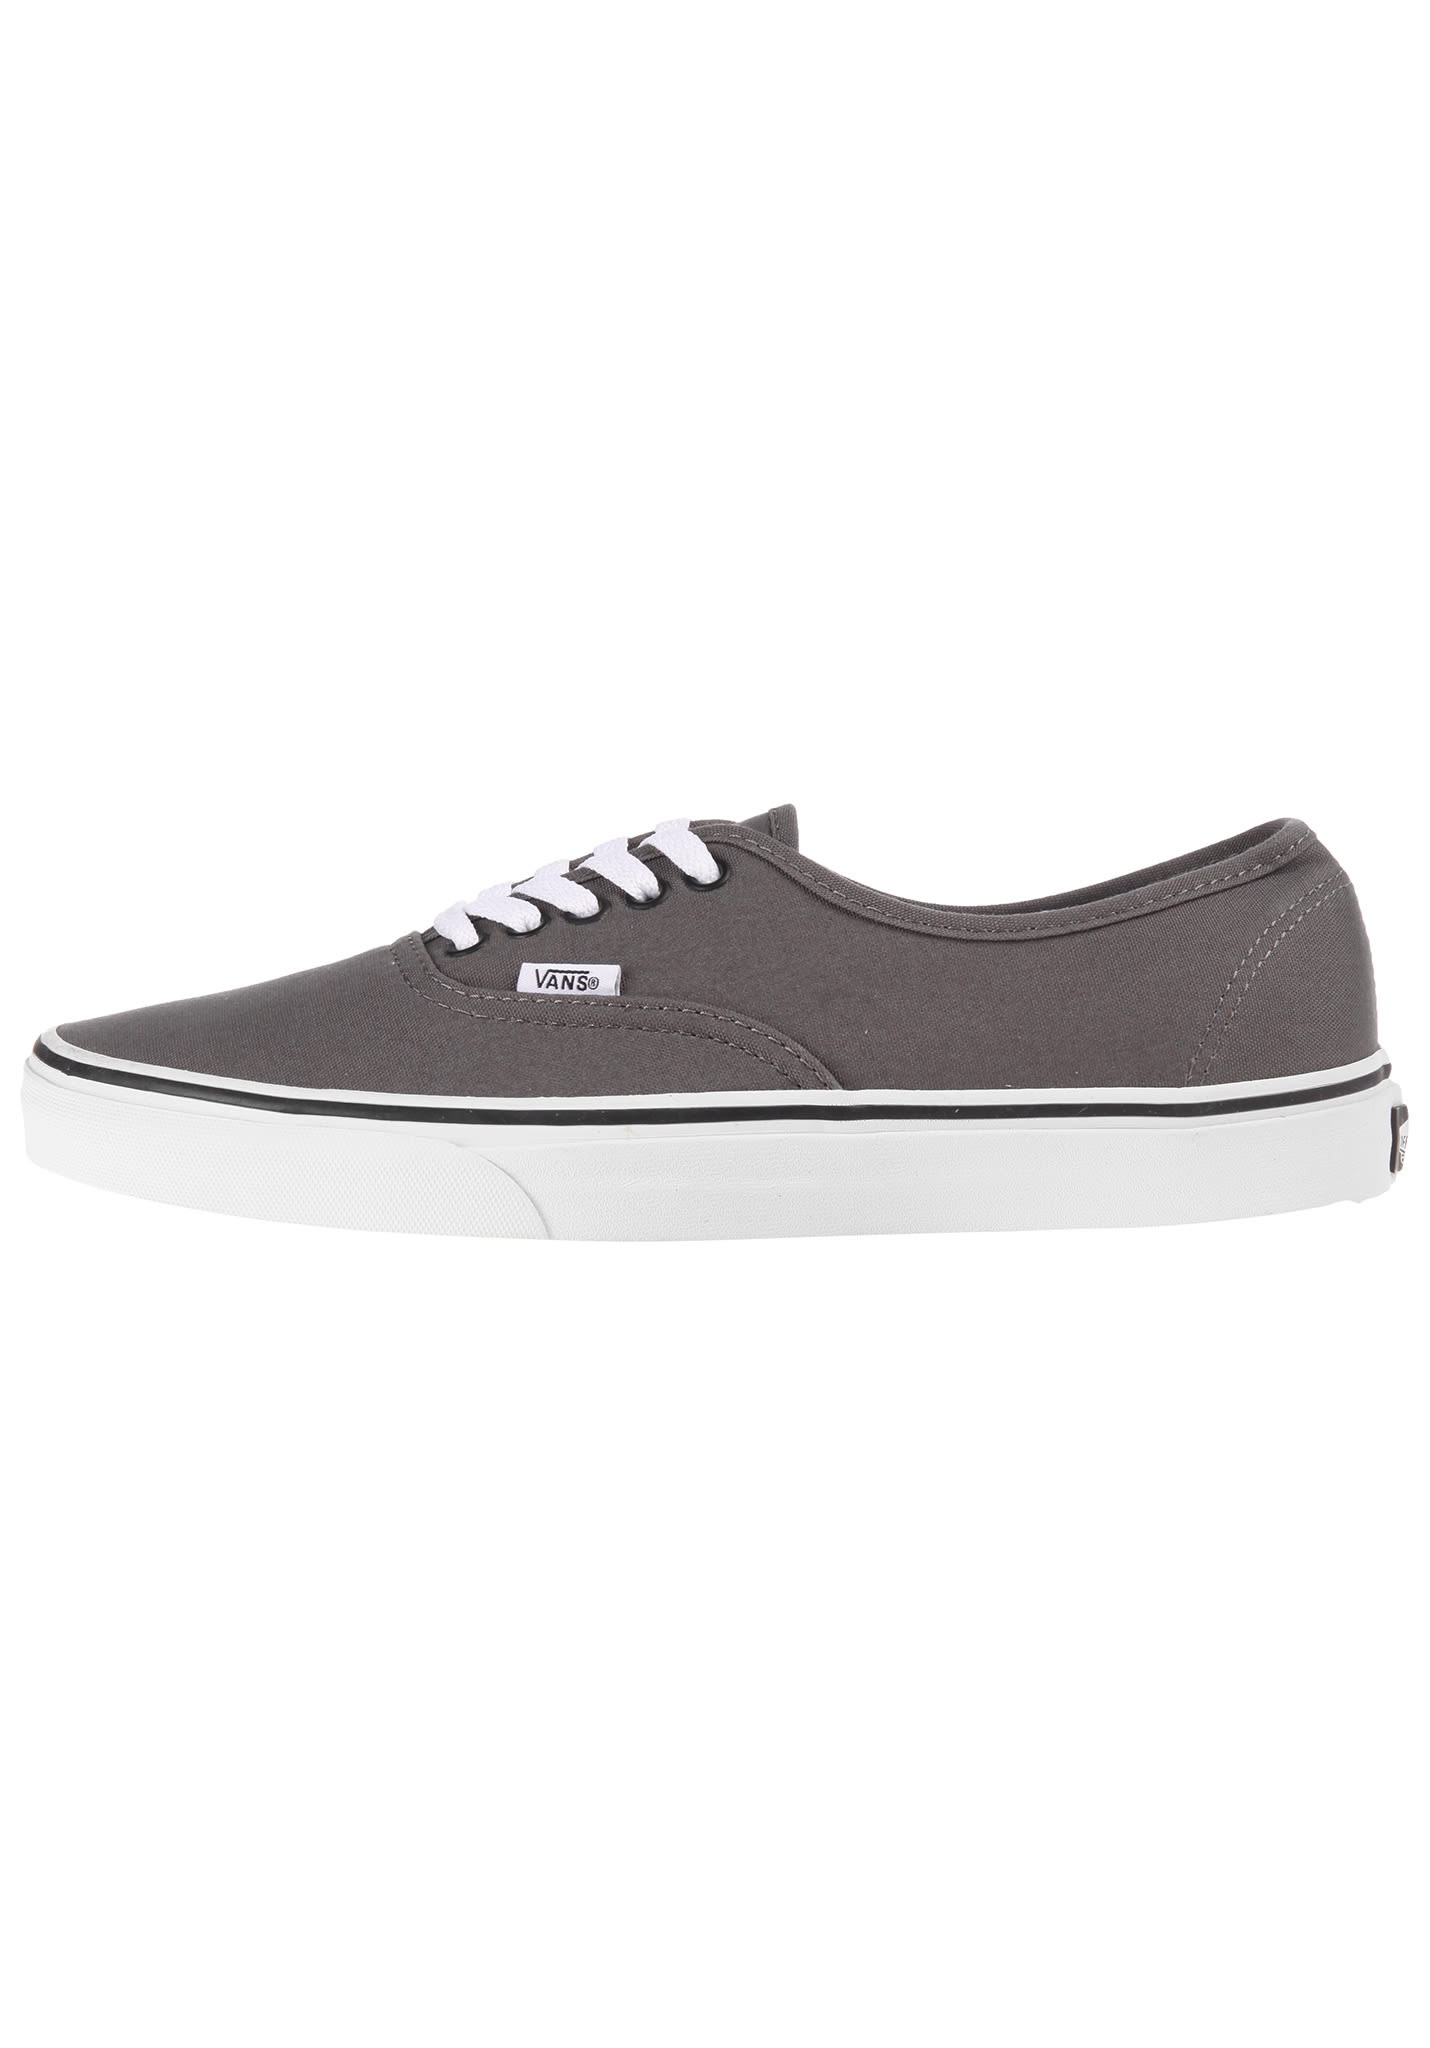 VANS Authentic Sneaker grau 5p6Ea